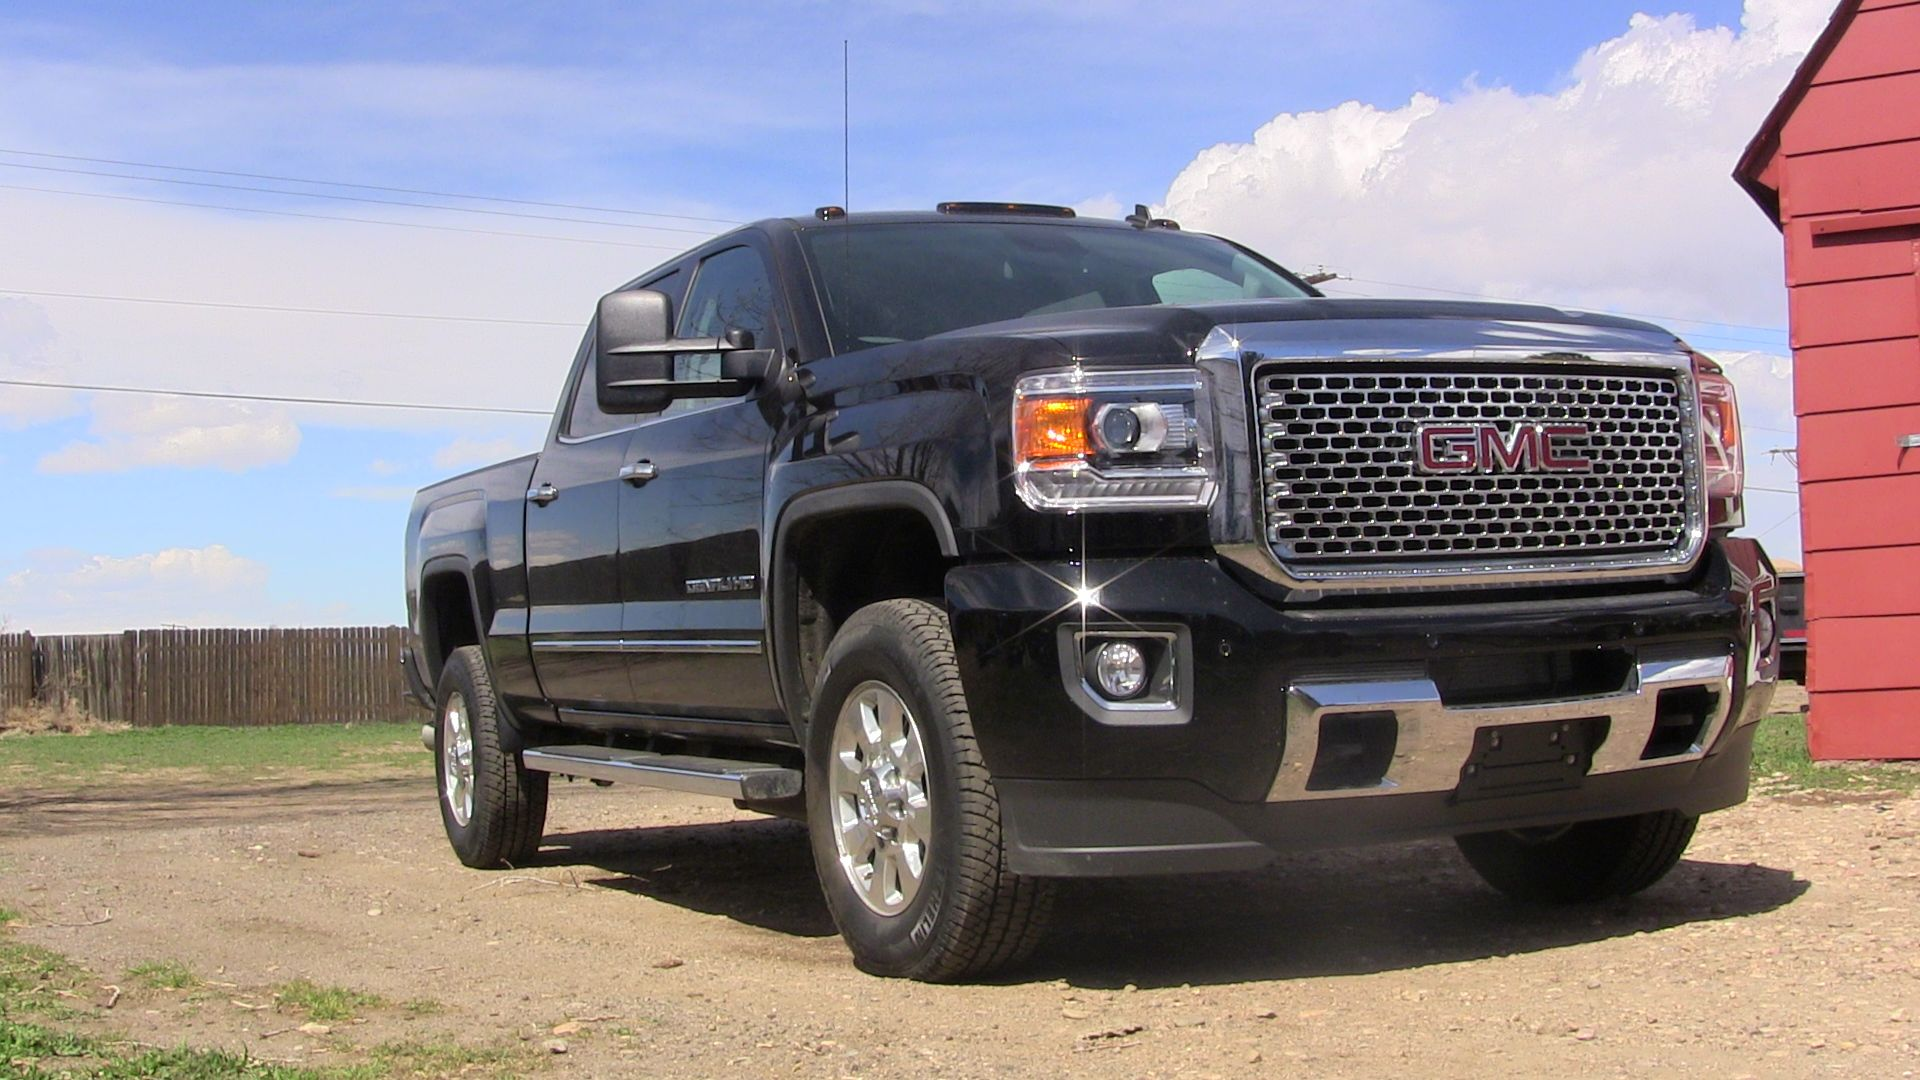 2015 gmc sierra 3500hd image 18. Black Bedroom Furniture Sets. Home Design Ideas